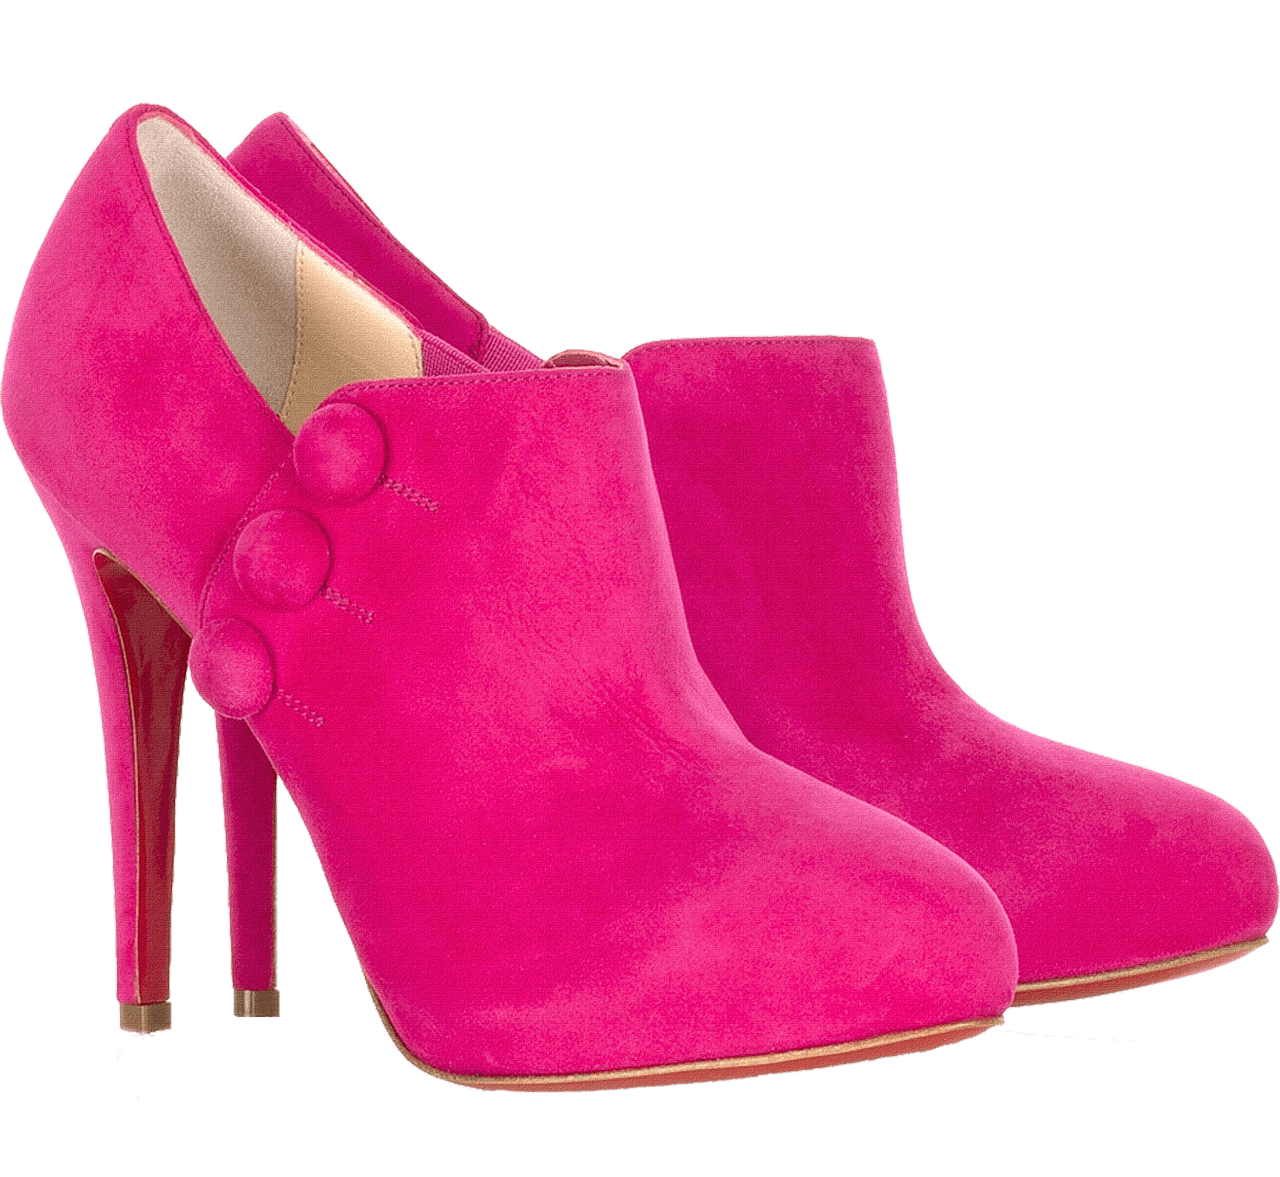 Female Shoes Image PNG Image